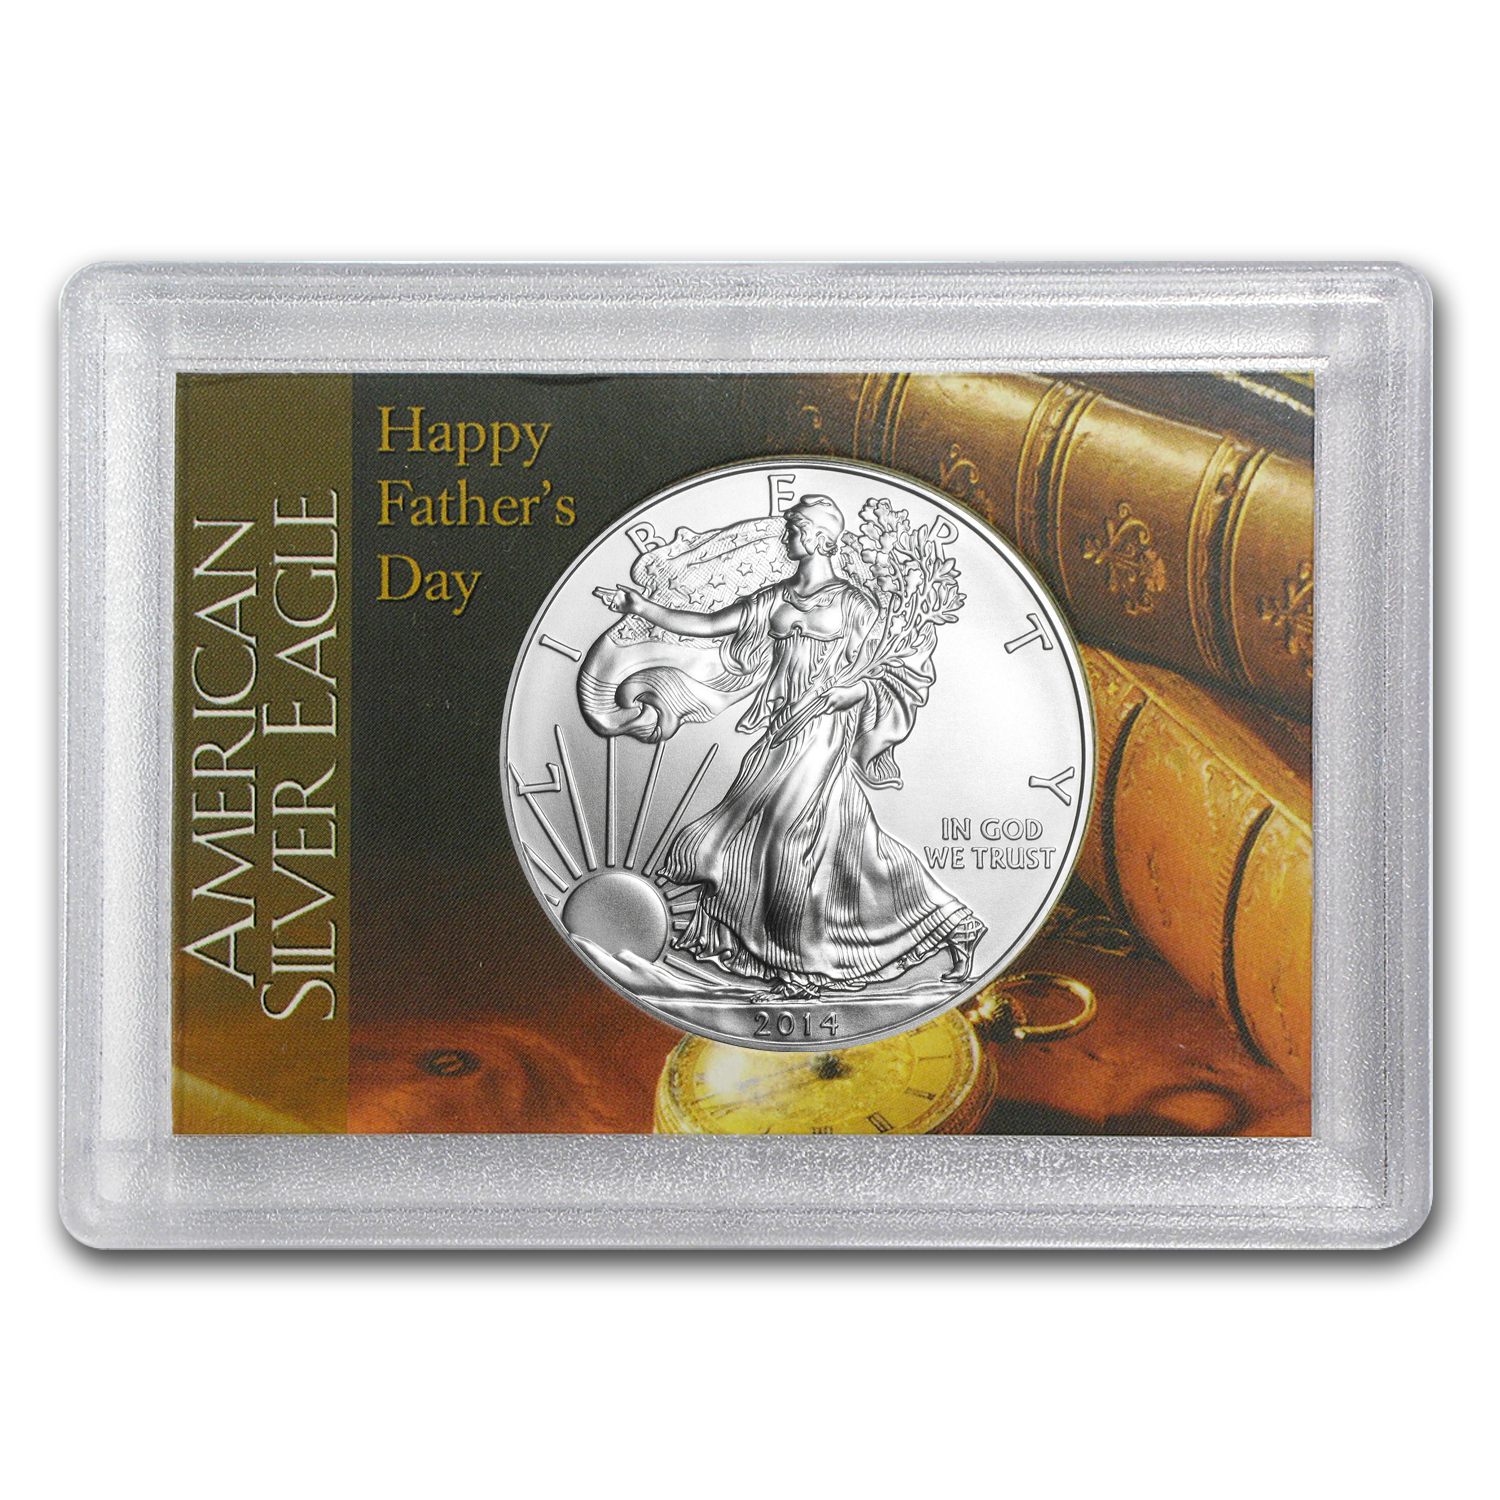 2014 1 oz Silver Eagle in Happy Father's Day Design Harris Holder